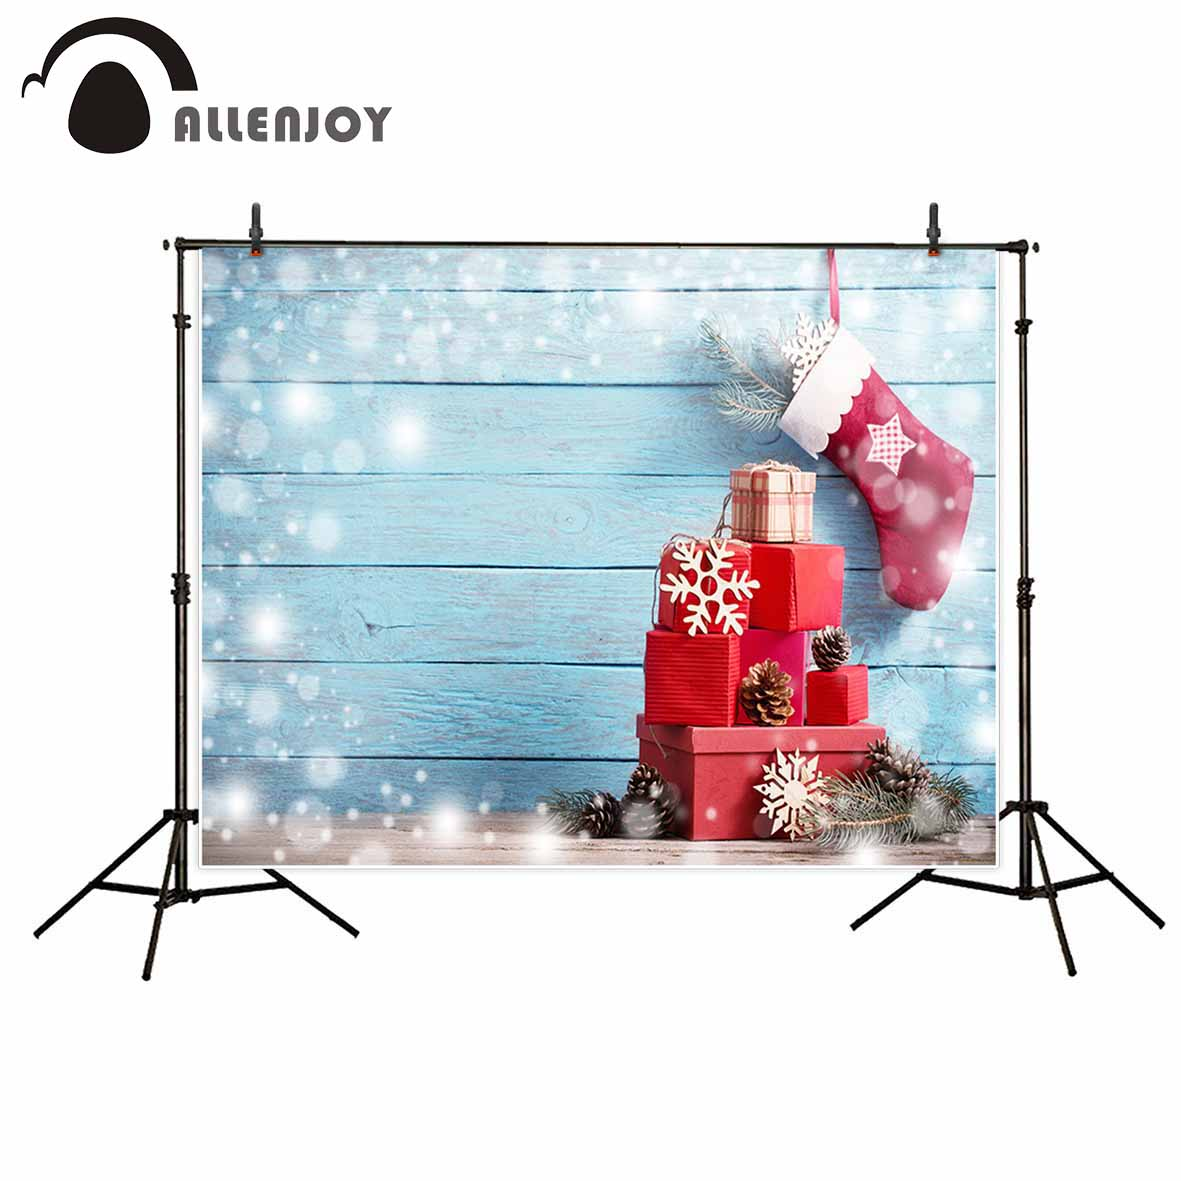 Allenjoy photography backdrop Blue Wooden Gift Red Sock Christmas Happy new year new background photocall customize photo print